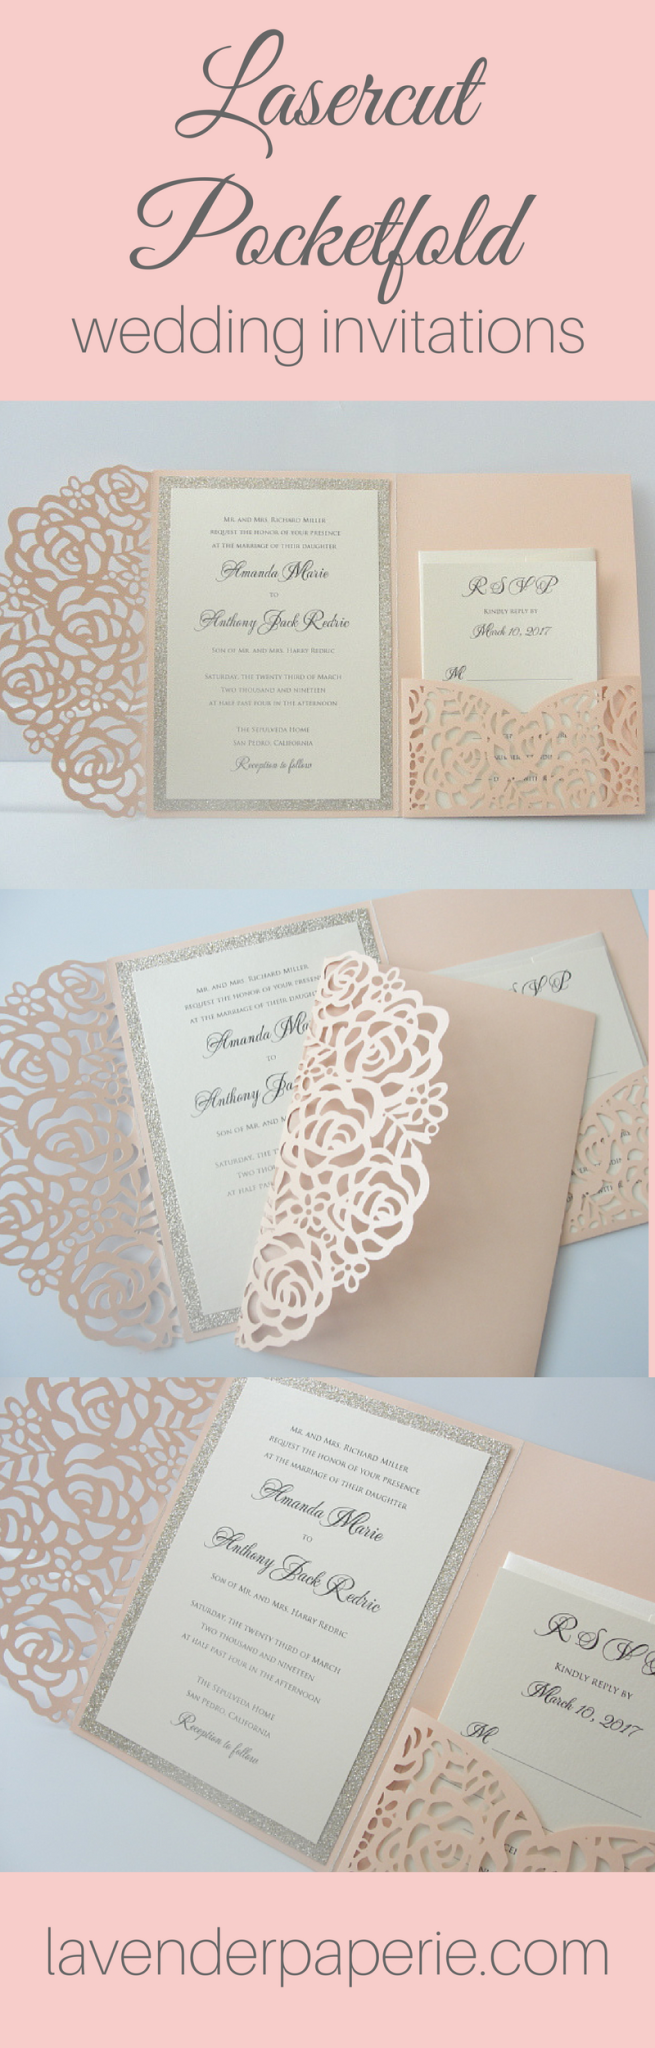 Laser Cut Pocketfold Wedding Invitations The Wedding Pros The